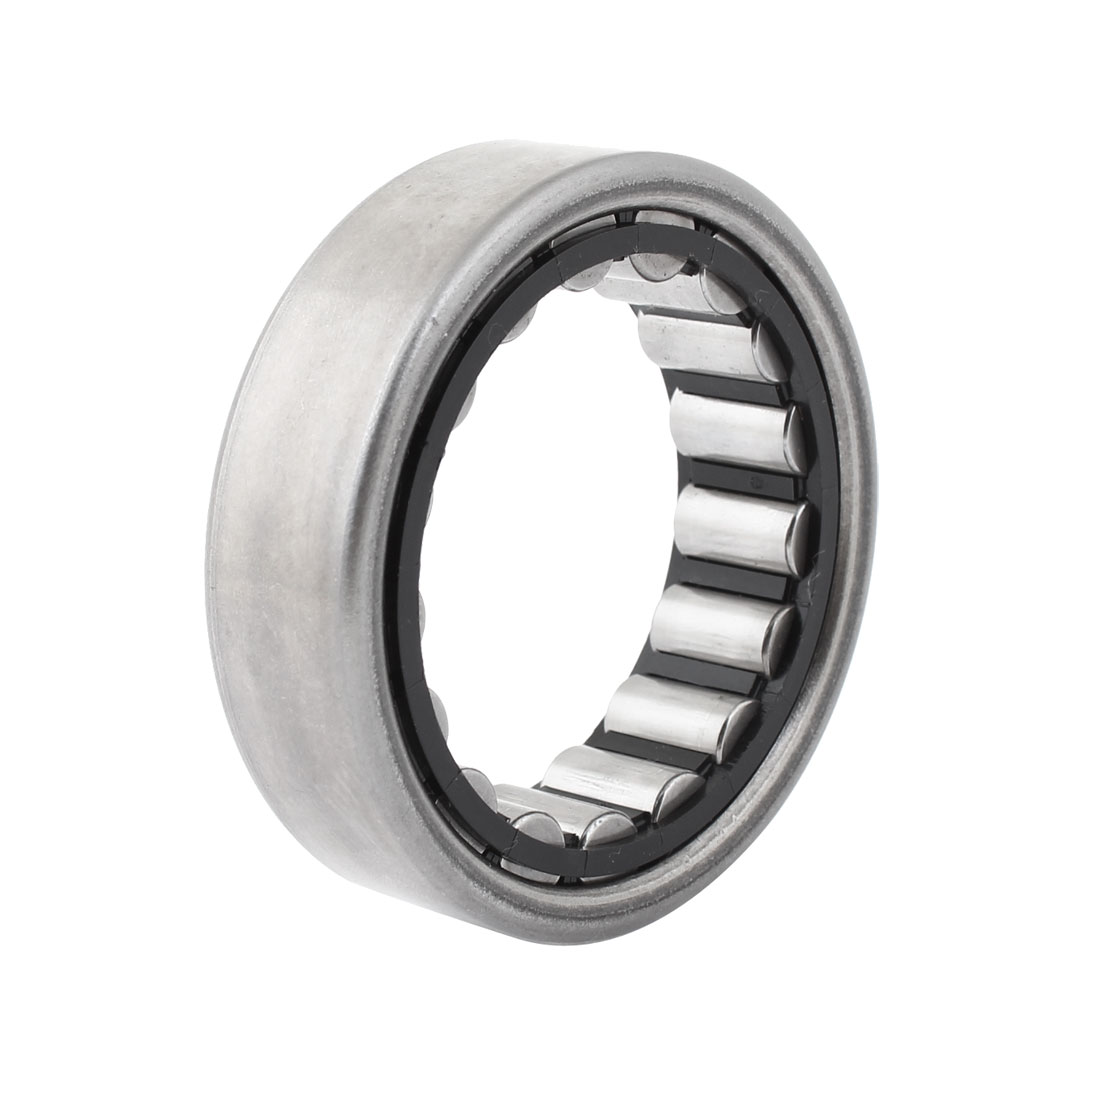 45mm x 63mm x 17mm F23203260 Caged Drawn Cup Needle Roller Bearing Silver Tone